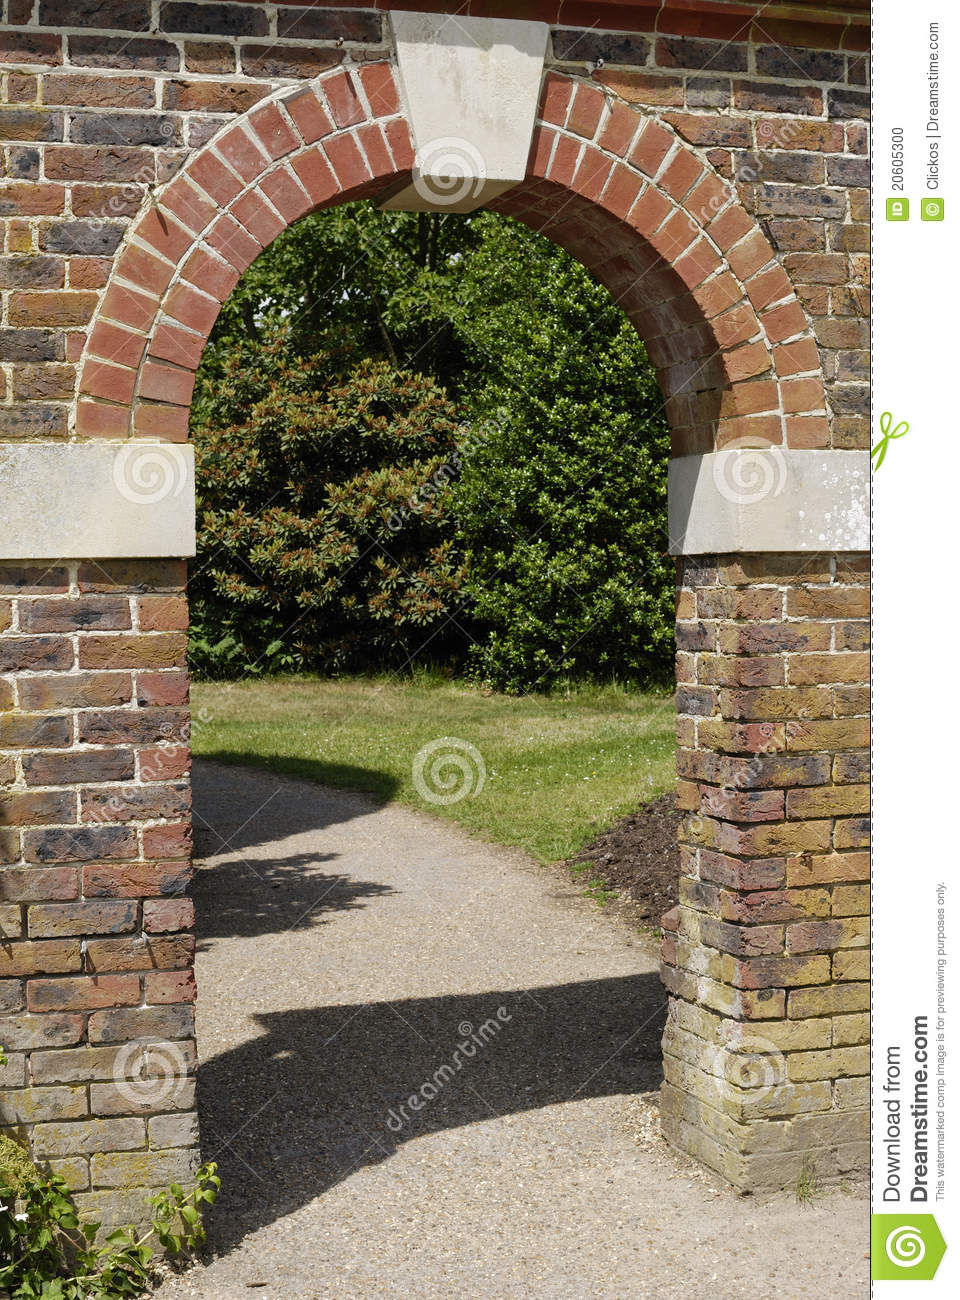 Arched Entrance In Brick Wall Stock Photo Image Of